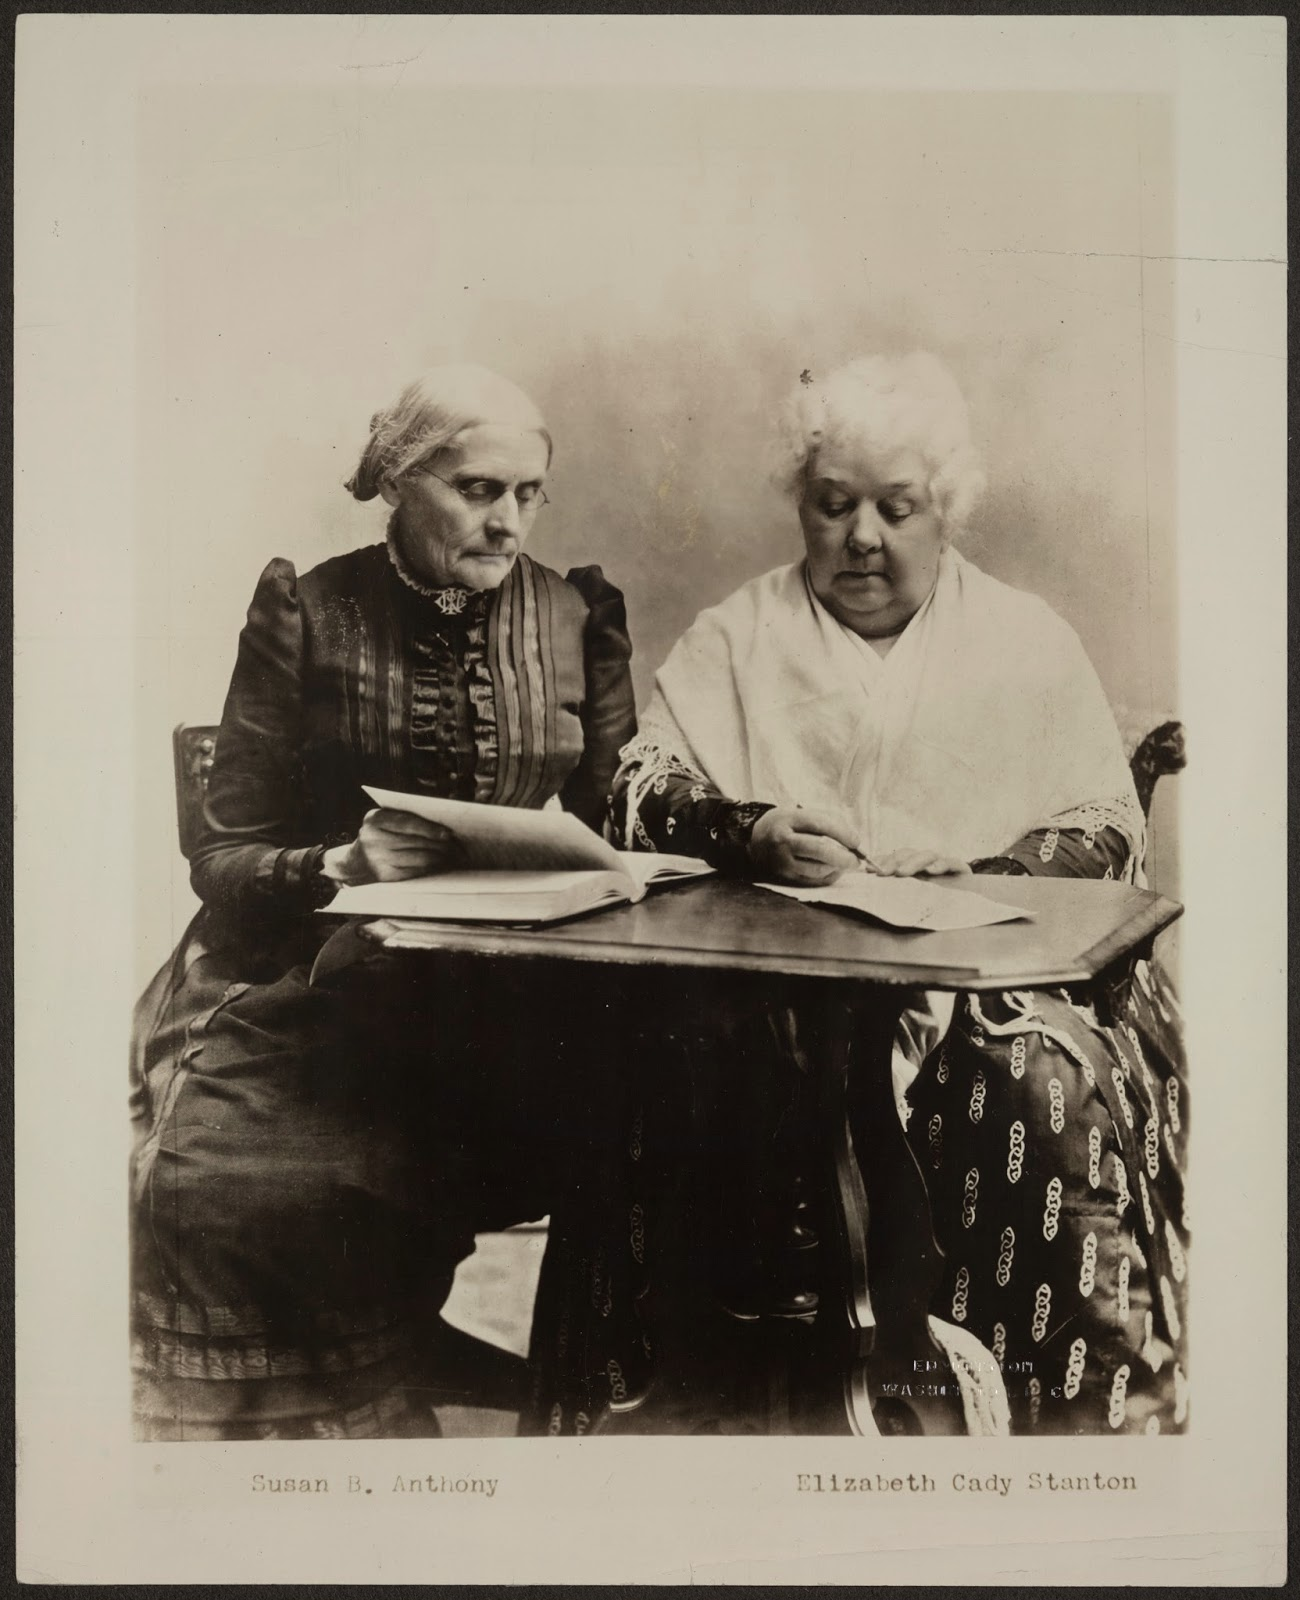 elizabeth cady stanton essay Elizabeth cady stanton (november 12, 1815 – october 26, 1902) was an american suffragist, social activist, abolitionist, and leading figure of the early women's rights movement.